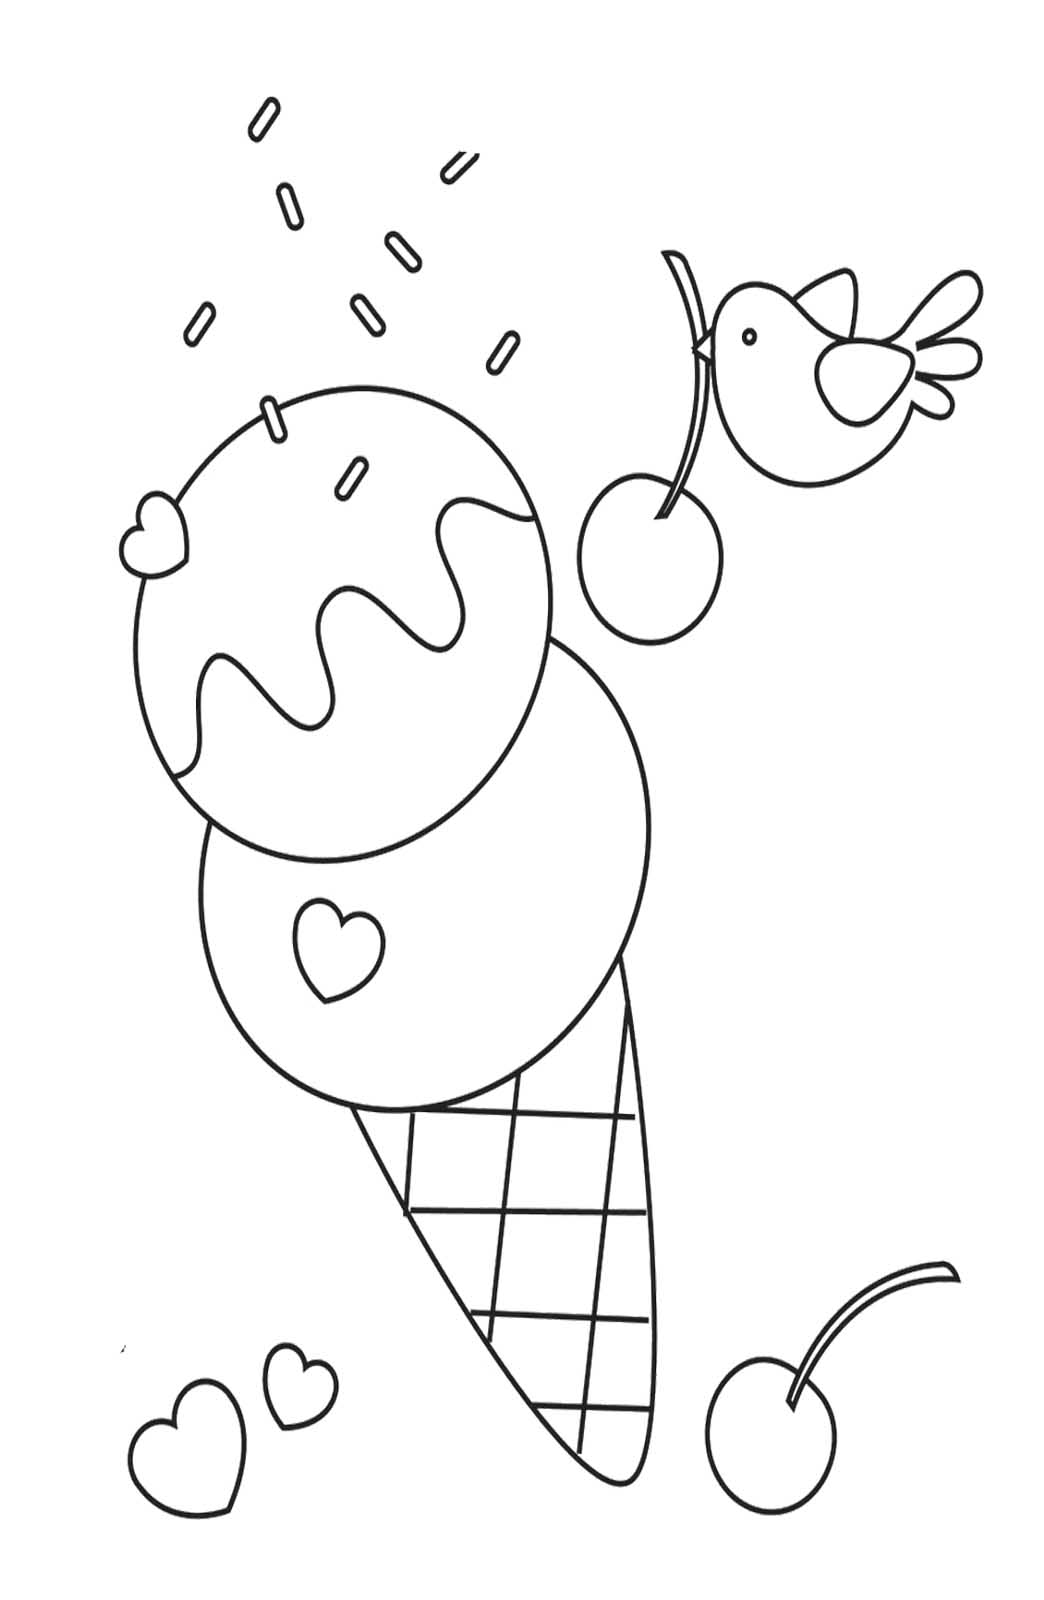 coloring page printable ice cream free printable ice cream coloring pages for kids page printable coloring ice cream